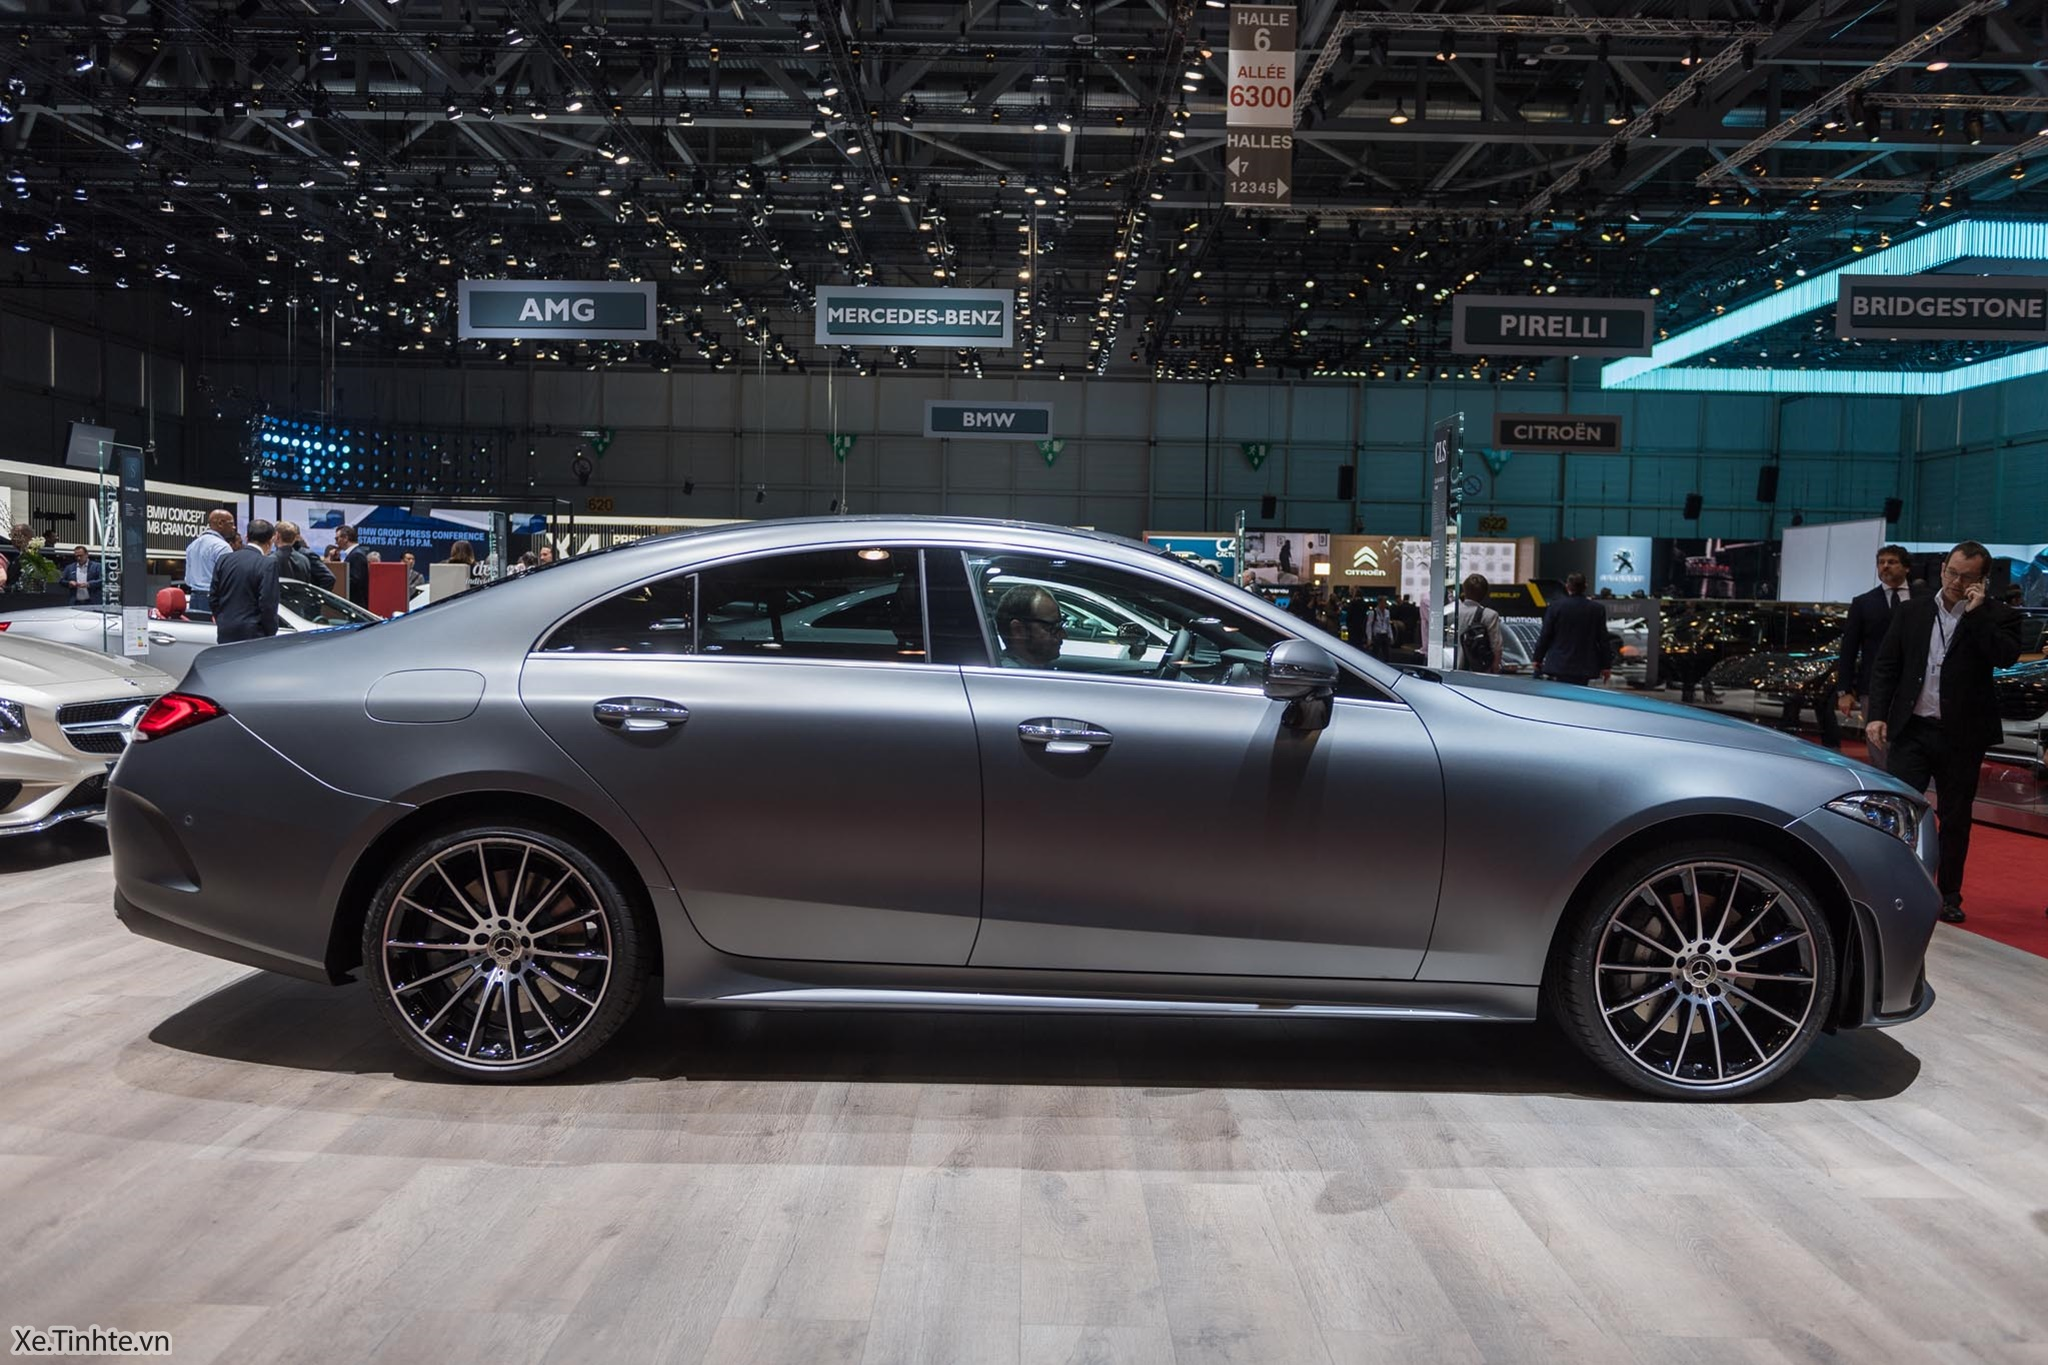 Mercedes_CLS_450_4MATIC_Coupe_Xe_Tinhte-002.jpg